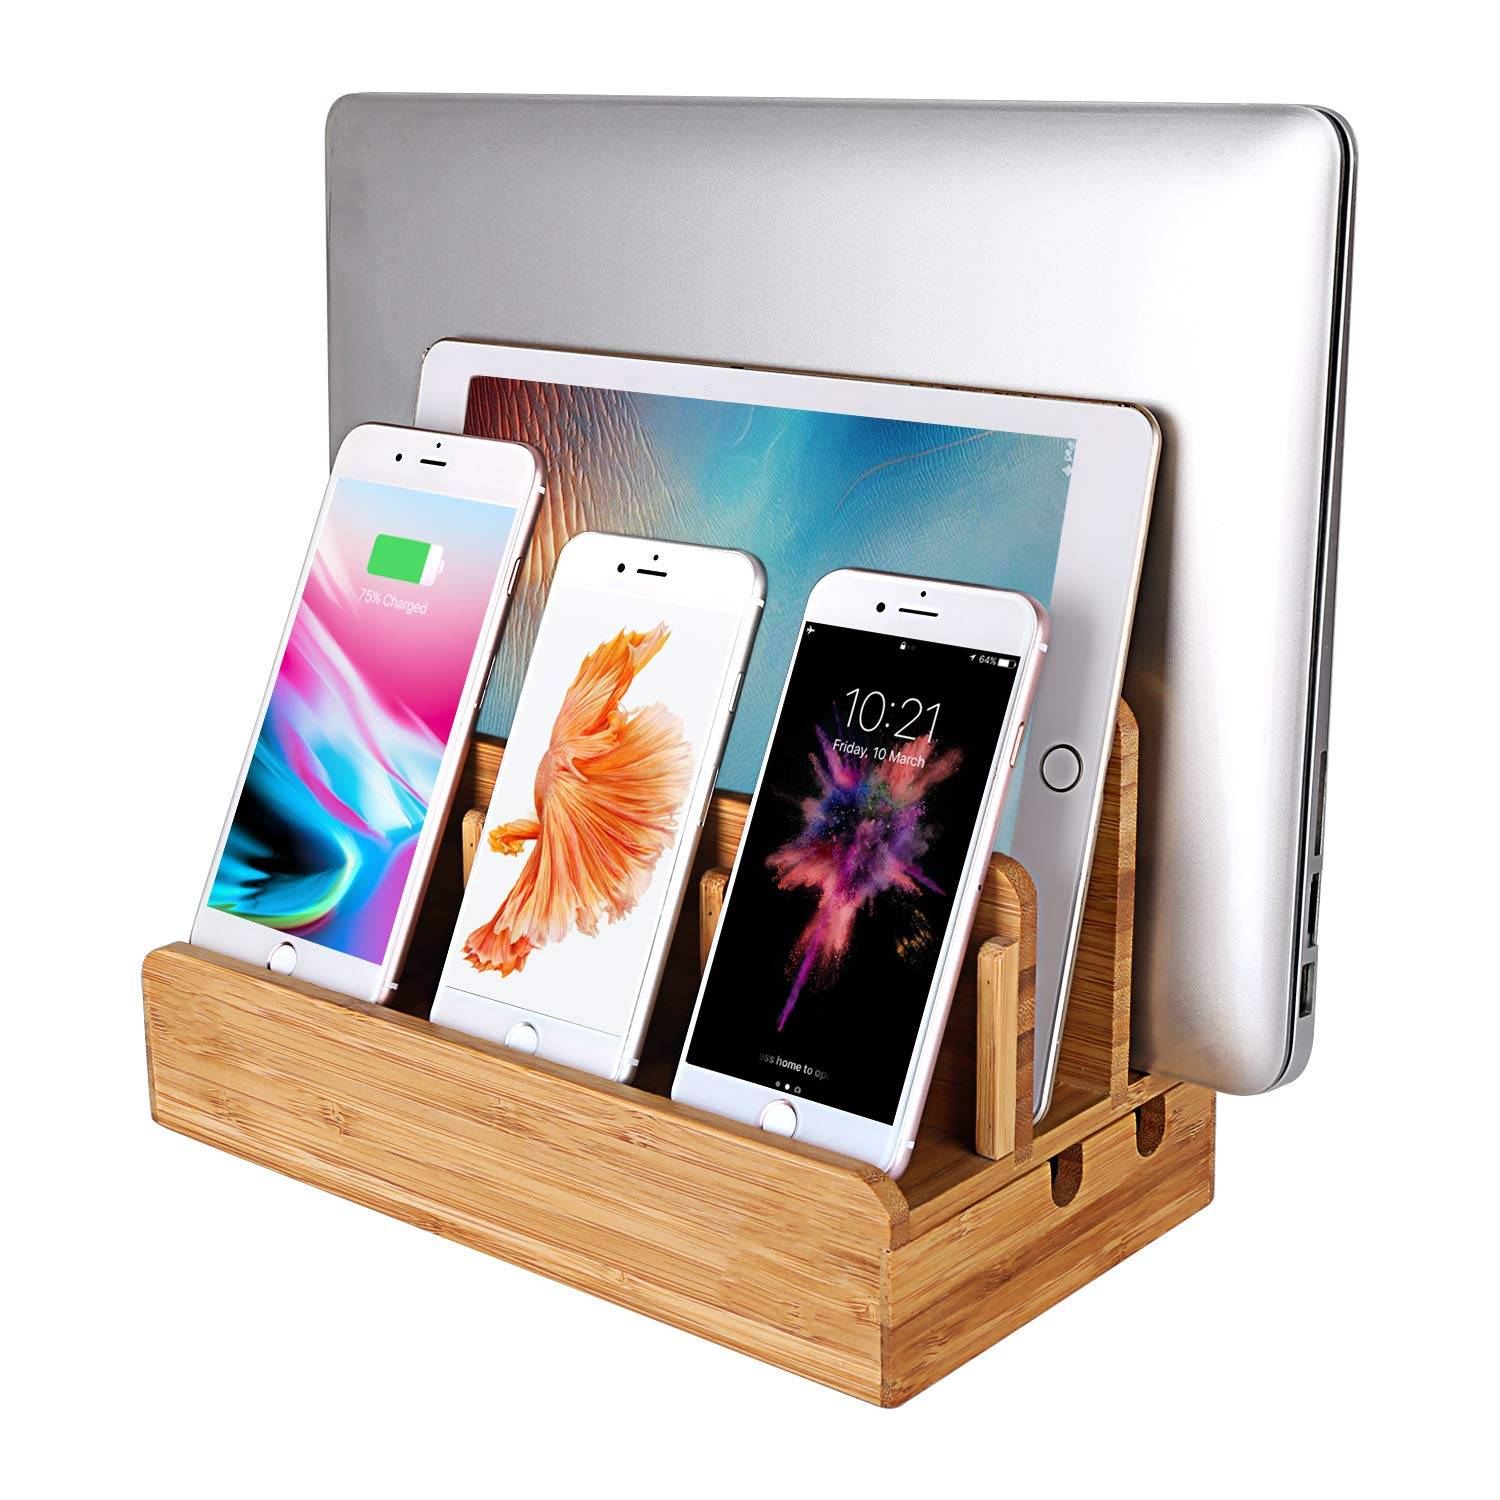 MOZOWO Bamboo Wood Multi-Device Desktop Charging Dock Station Charger Holder Cradle Stand Compatible for iPhone Xs MAX XR X 8 7 6 6S Plus iPad Mini Pro Air Laptop Tablets Samsung LG Sony Smartphones by MOZOWO